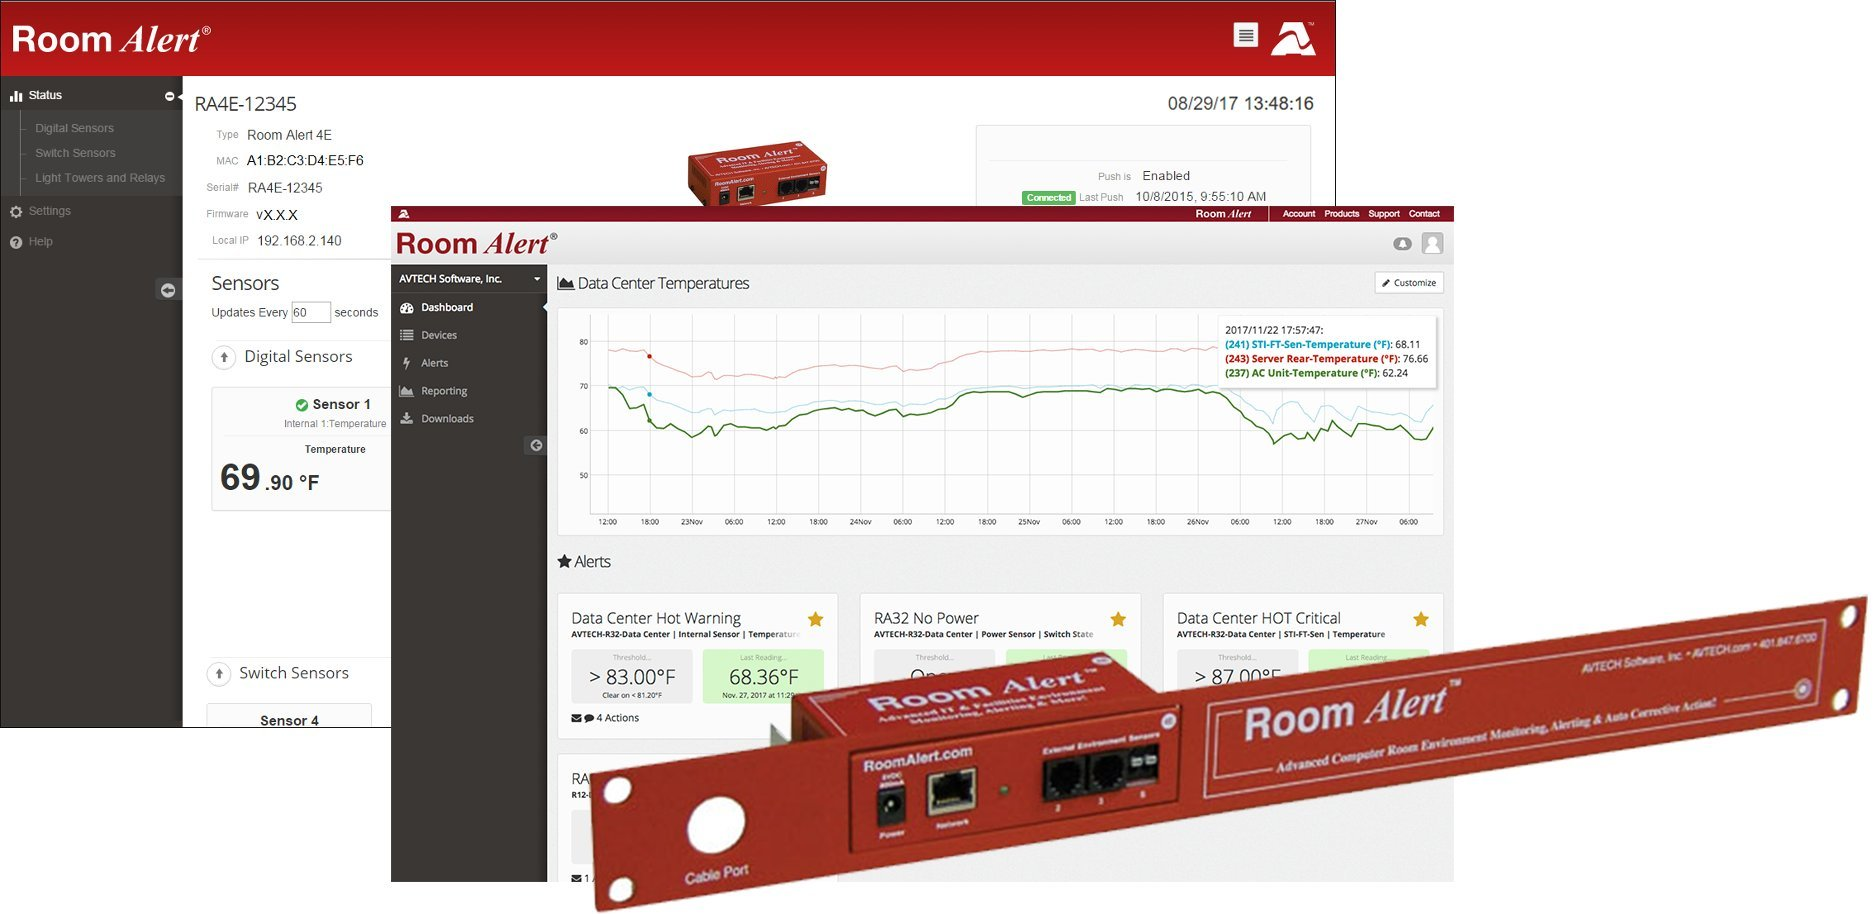 Room Alert 4ER - Environment Temperature Monitor w/2 External Digital Ports and 1 External Switch Channel